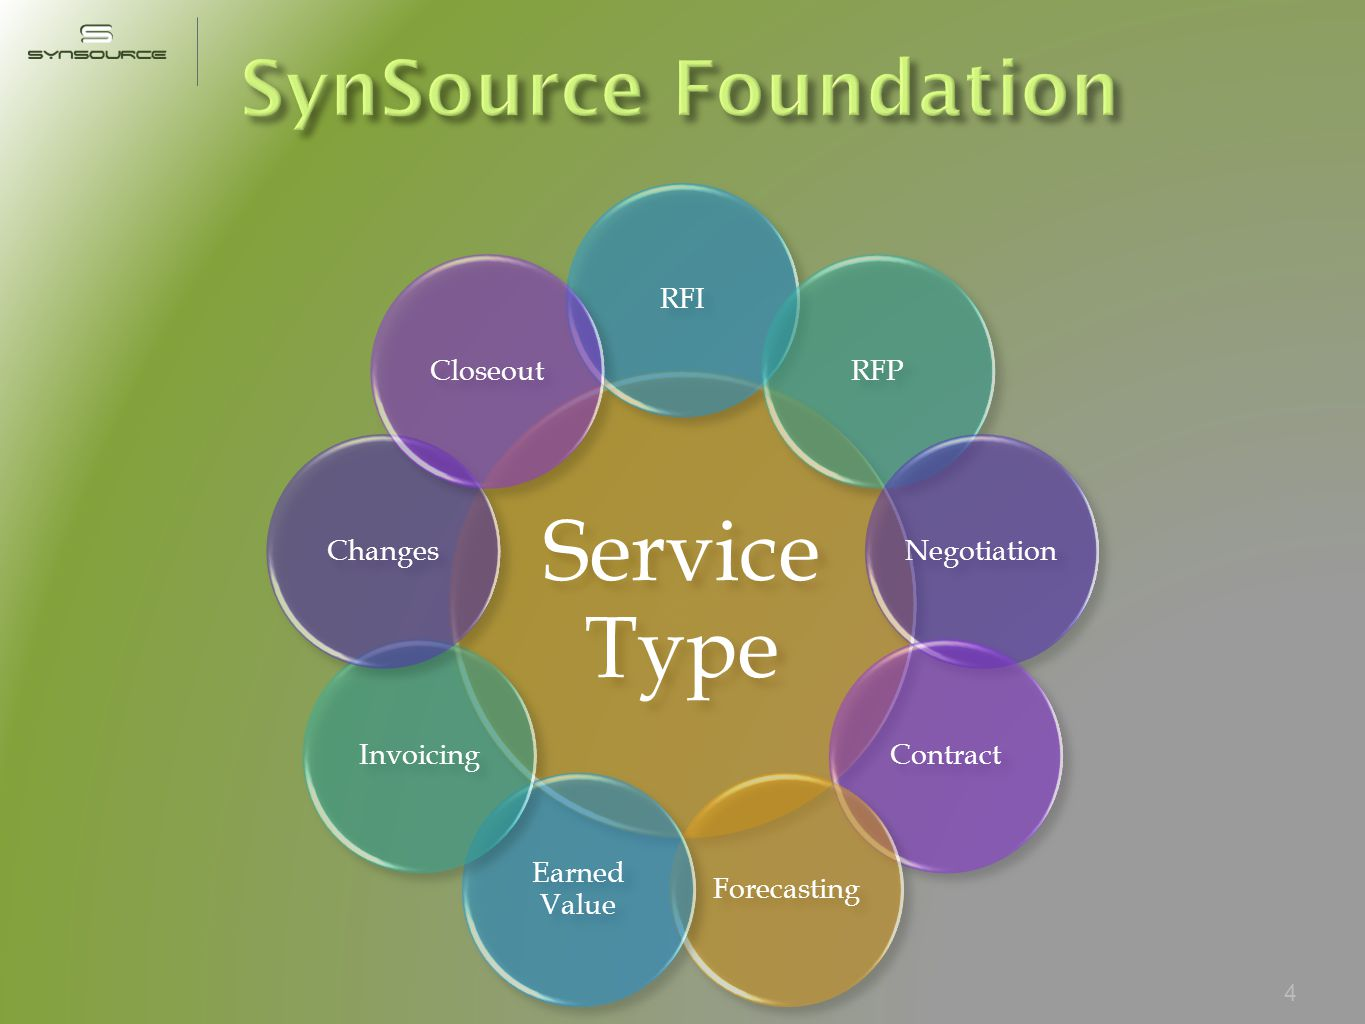 Service Type RFIRFPNegotiationContractForecasting Earned Value InvoicingChangesCloseout 4